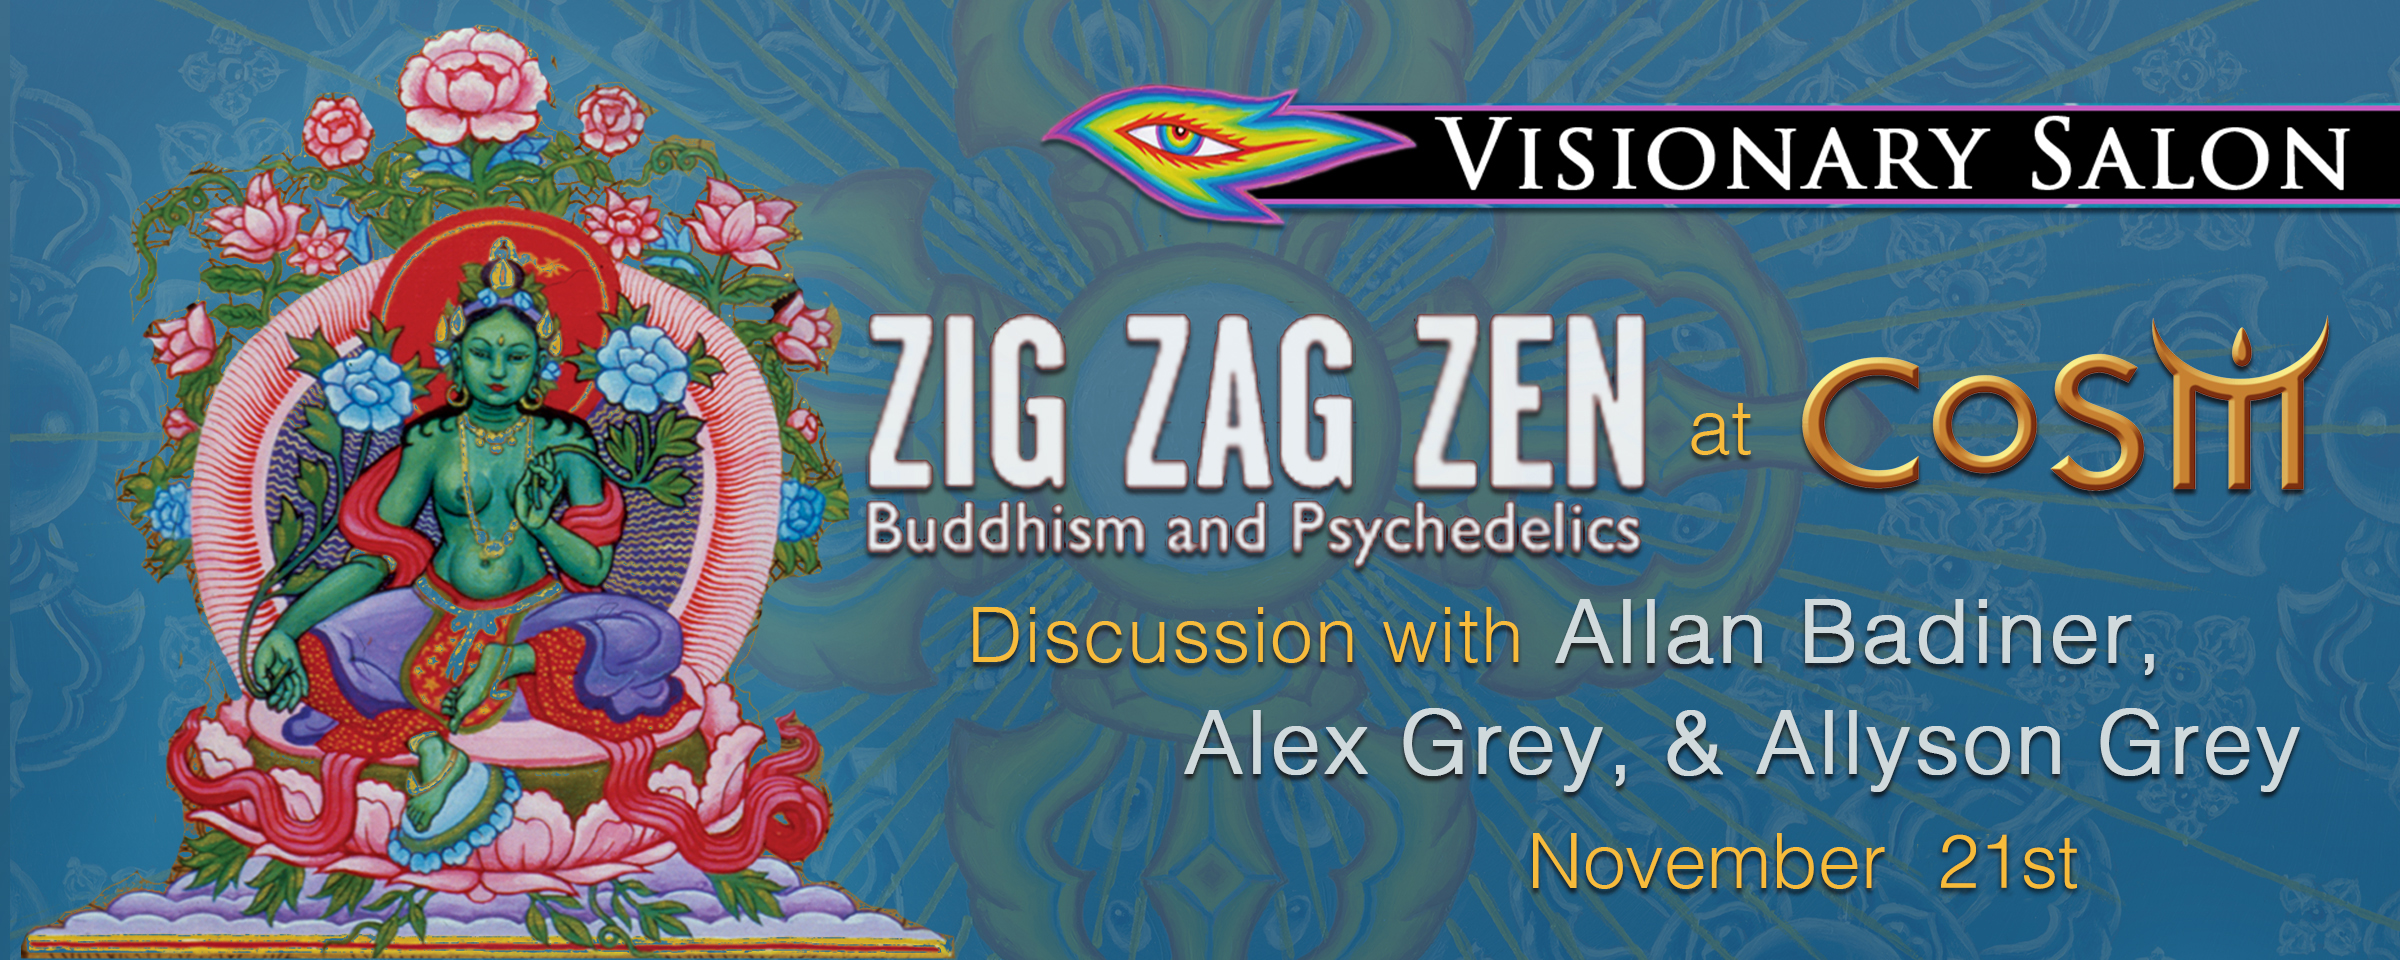 Visionary salon zig zag zen with allan badiner alex grey for A visionary salon